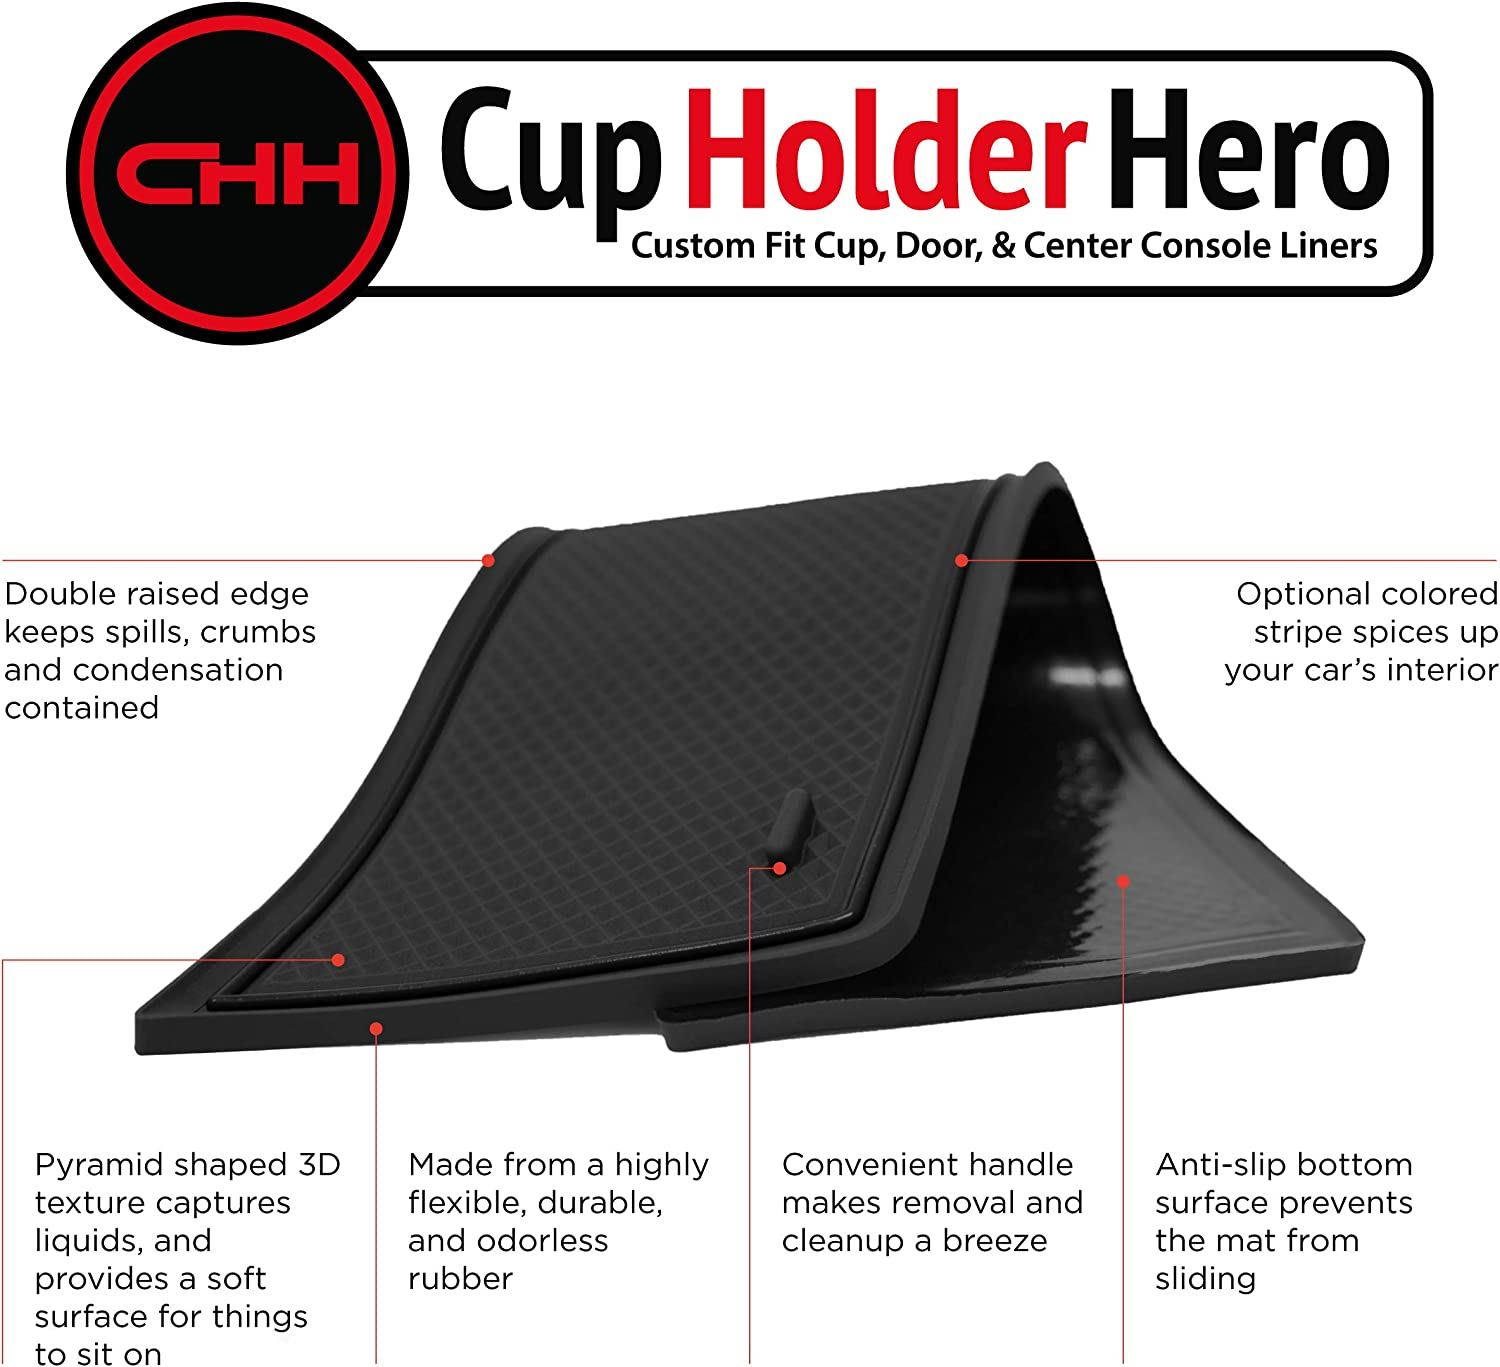 CupHolderHero for Honda CR-V CRV 2015-2016 Custom Fit Cup Holder and Center Console Liner Accessories 17-pc Set Gray Trim Door